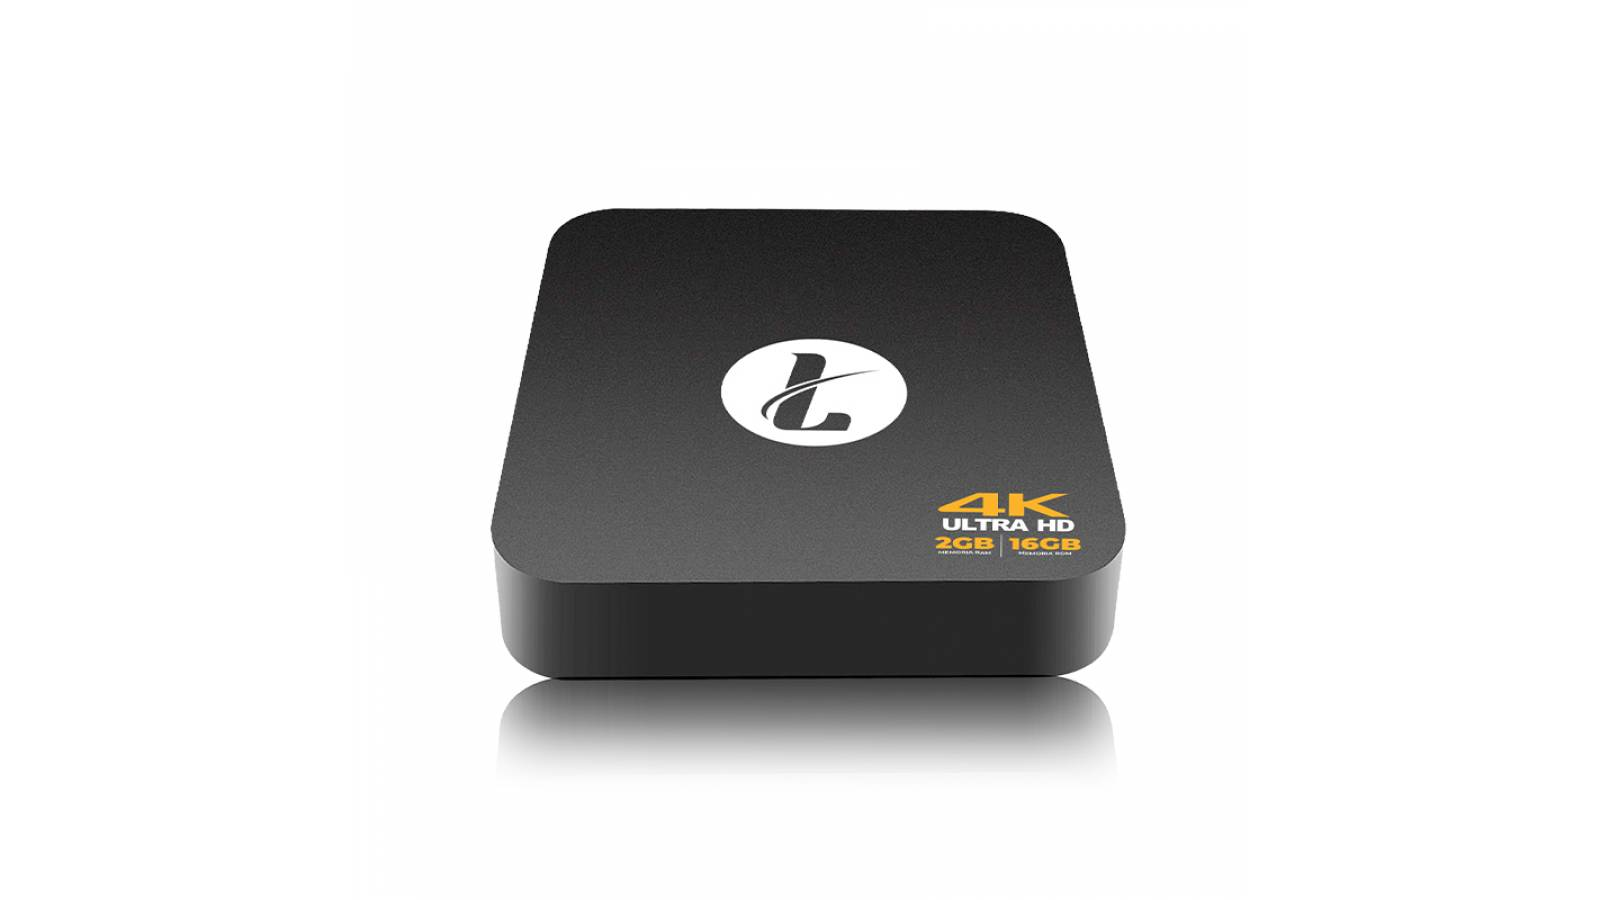 SMART TV BOX LEDSTAR 216 GB